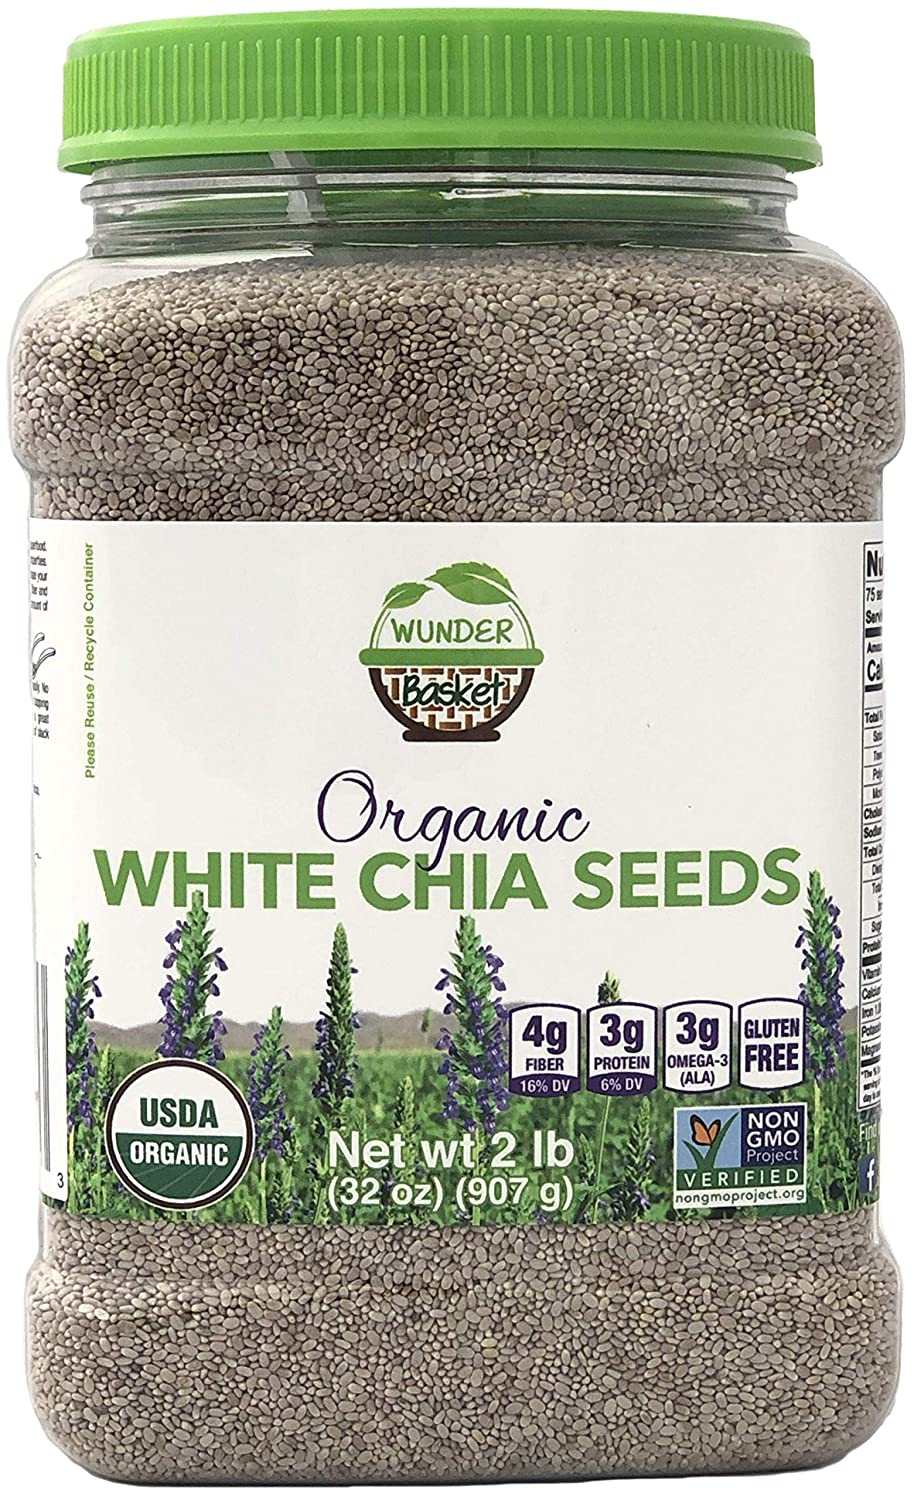 Semillas de Chia de Wunder Basket: Amazon.com: Grocery ...